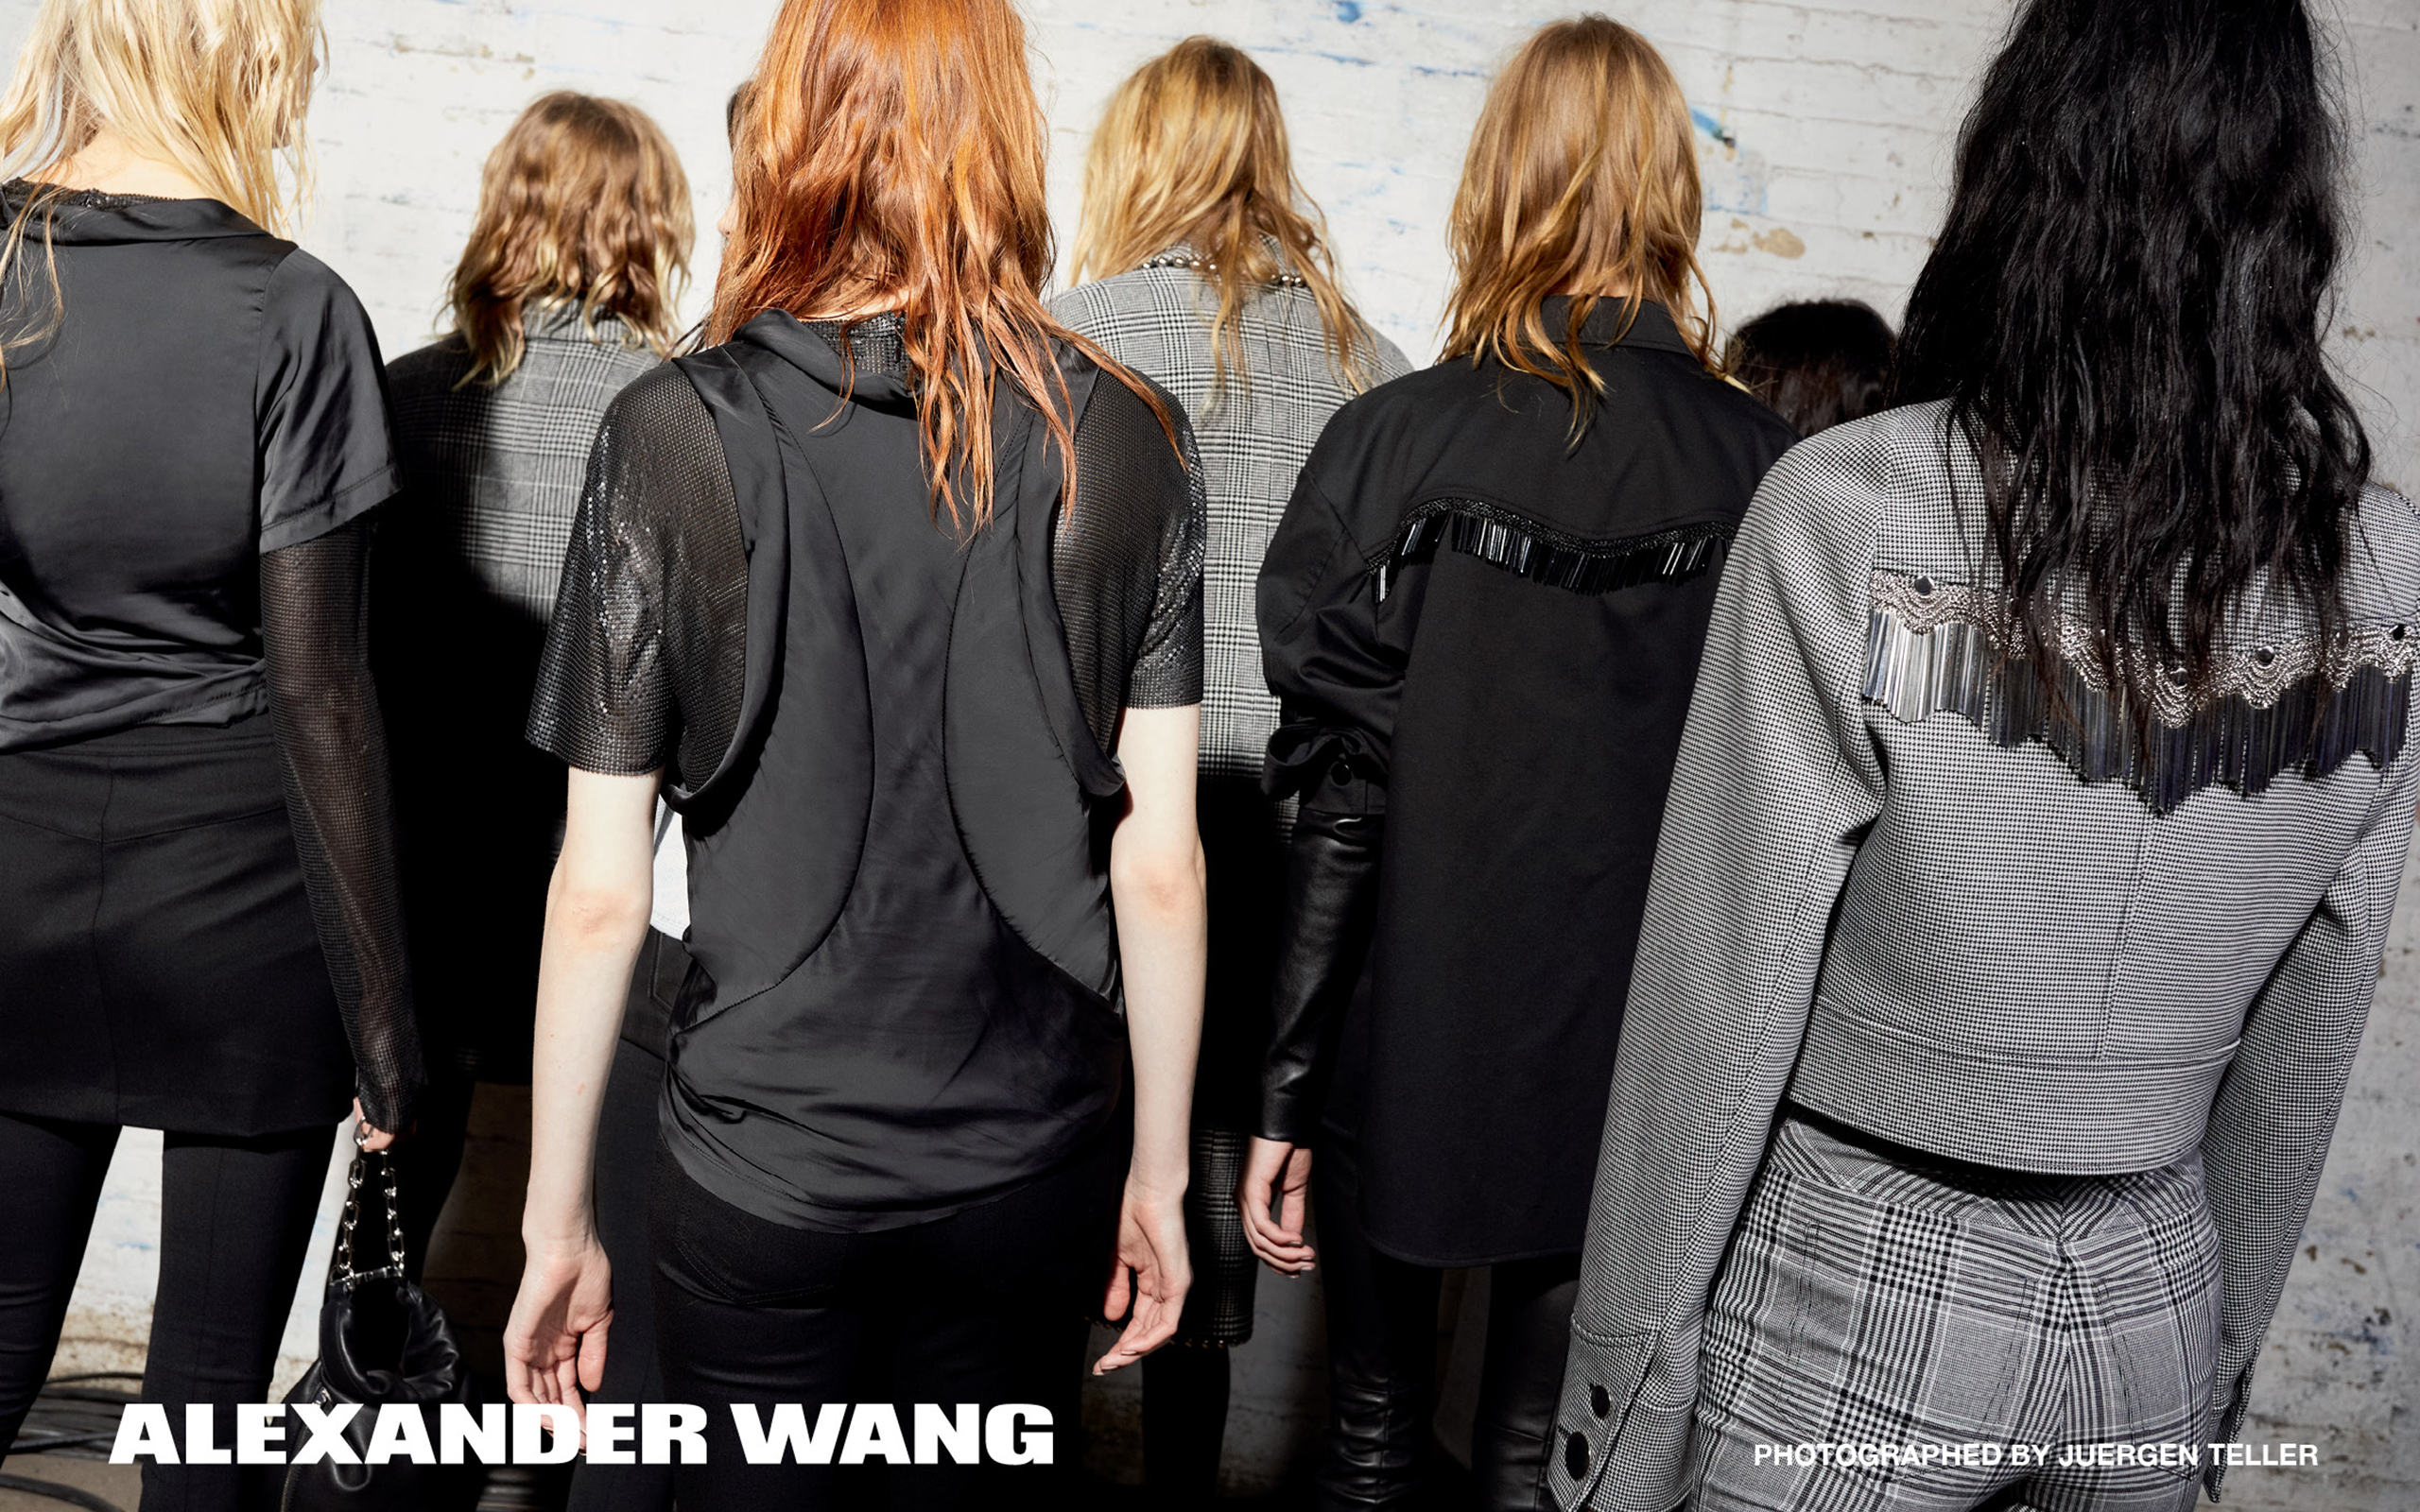 Alexander Wang Releases Fall 2017 Campaign 'NO AFTER PARTY'